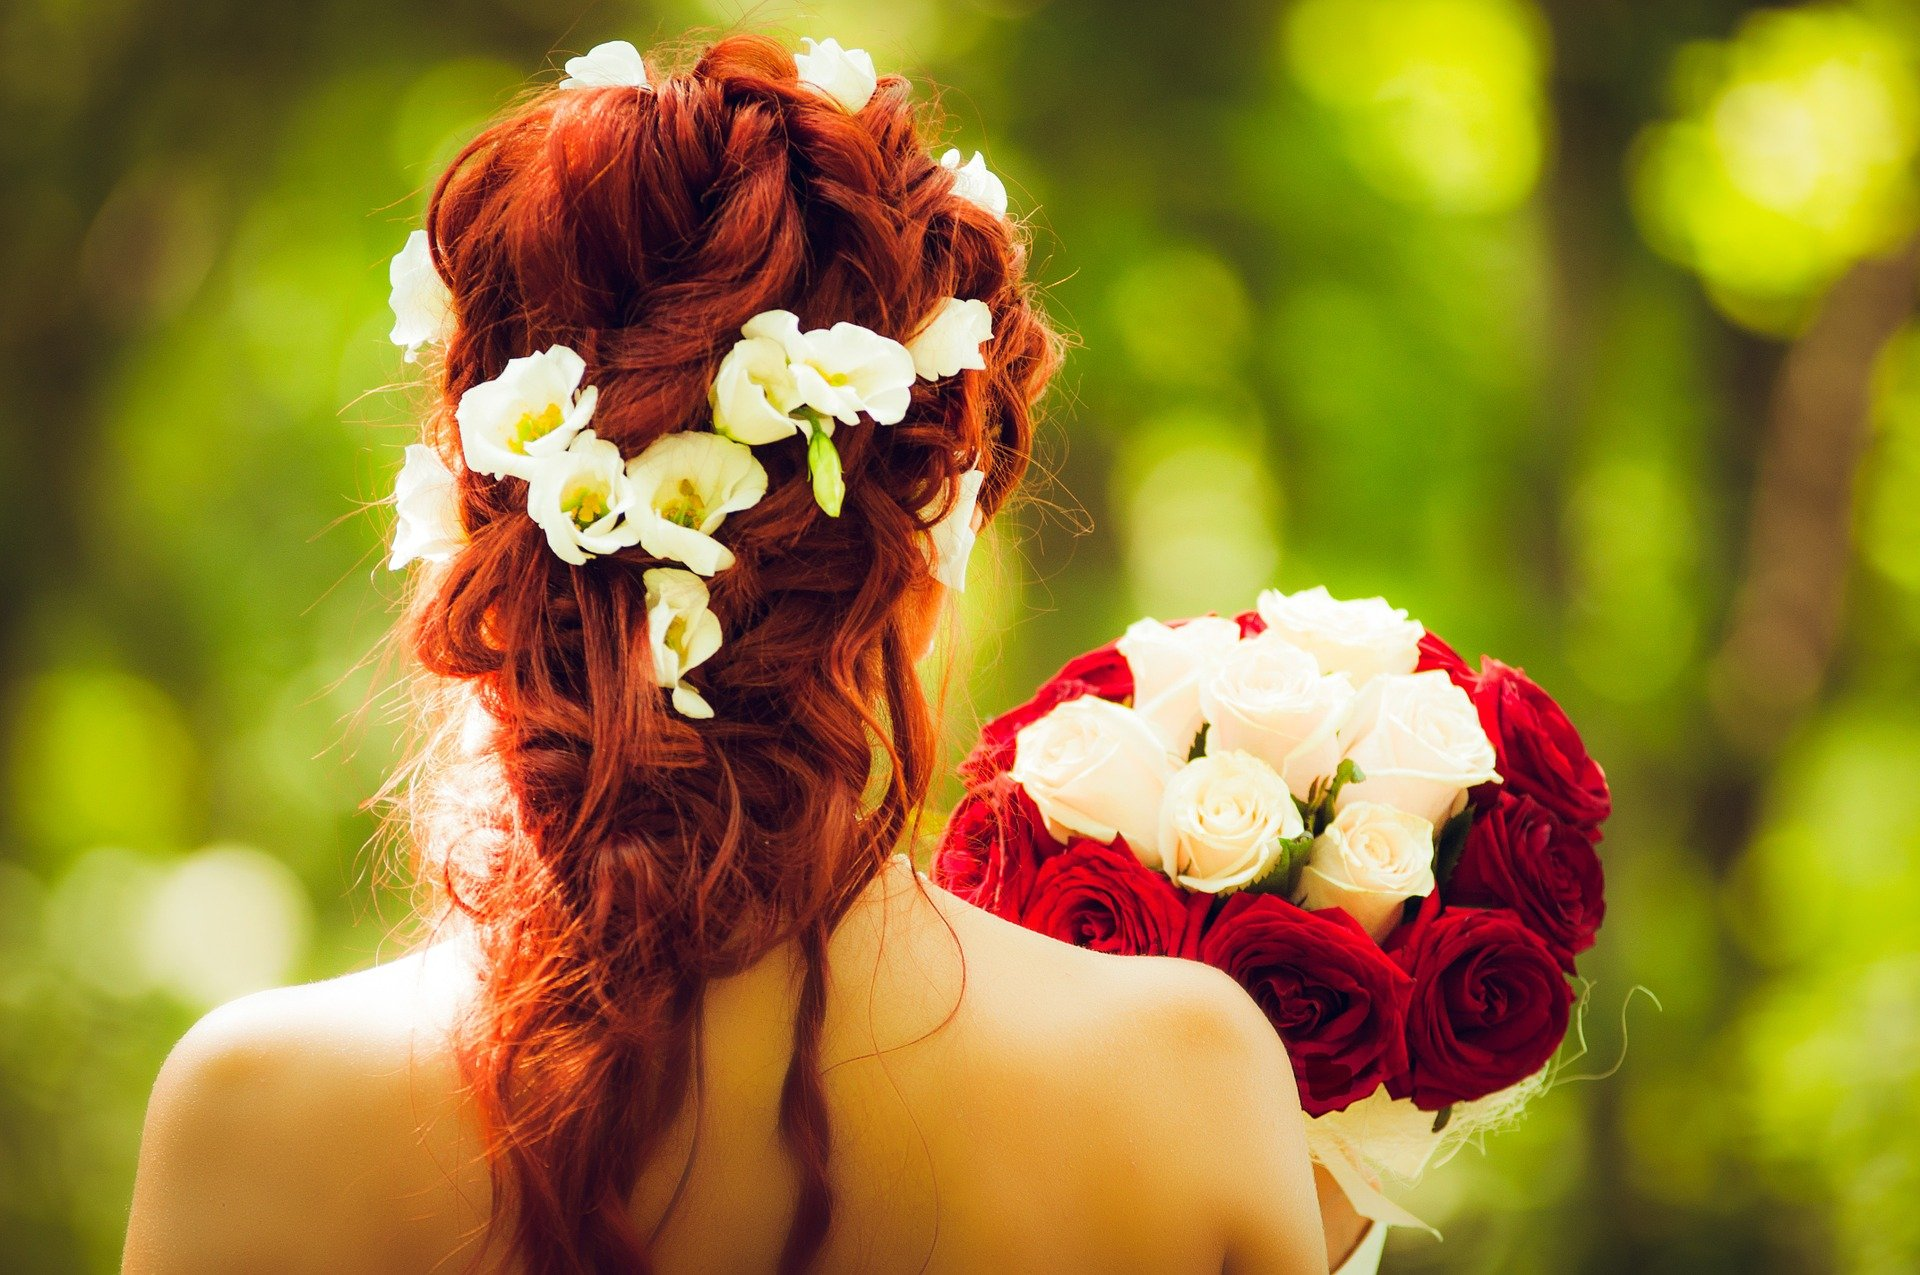 A woman on her wedding day holding a bouquet of flowers. | Source: Pixabay.